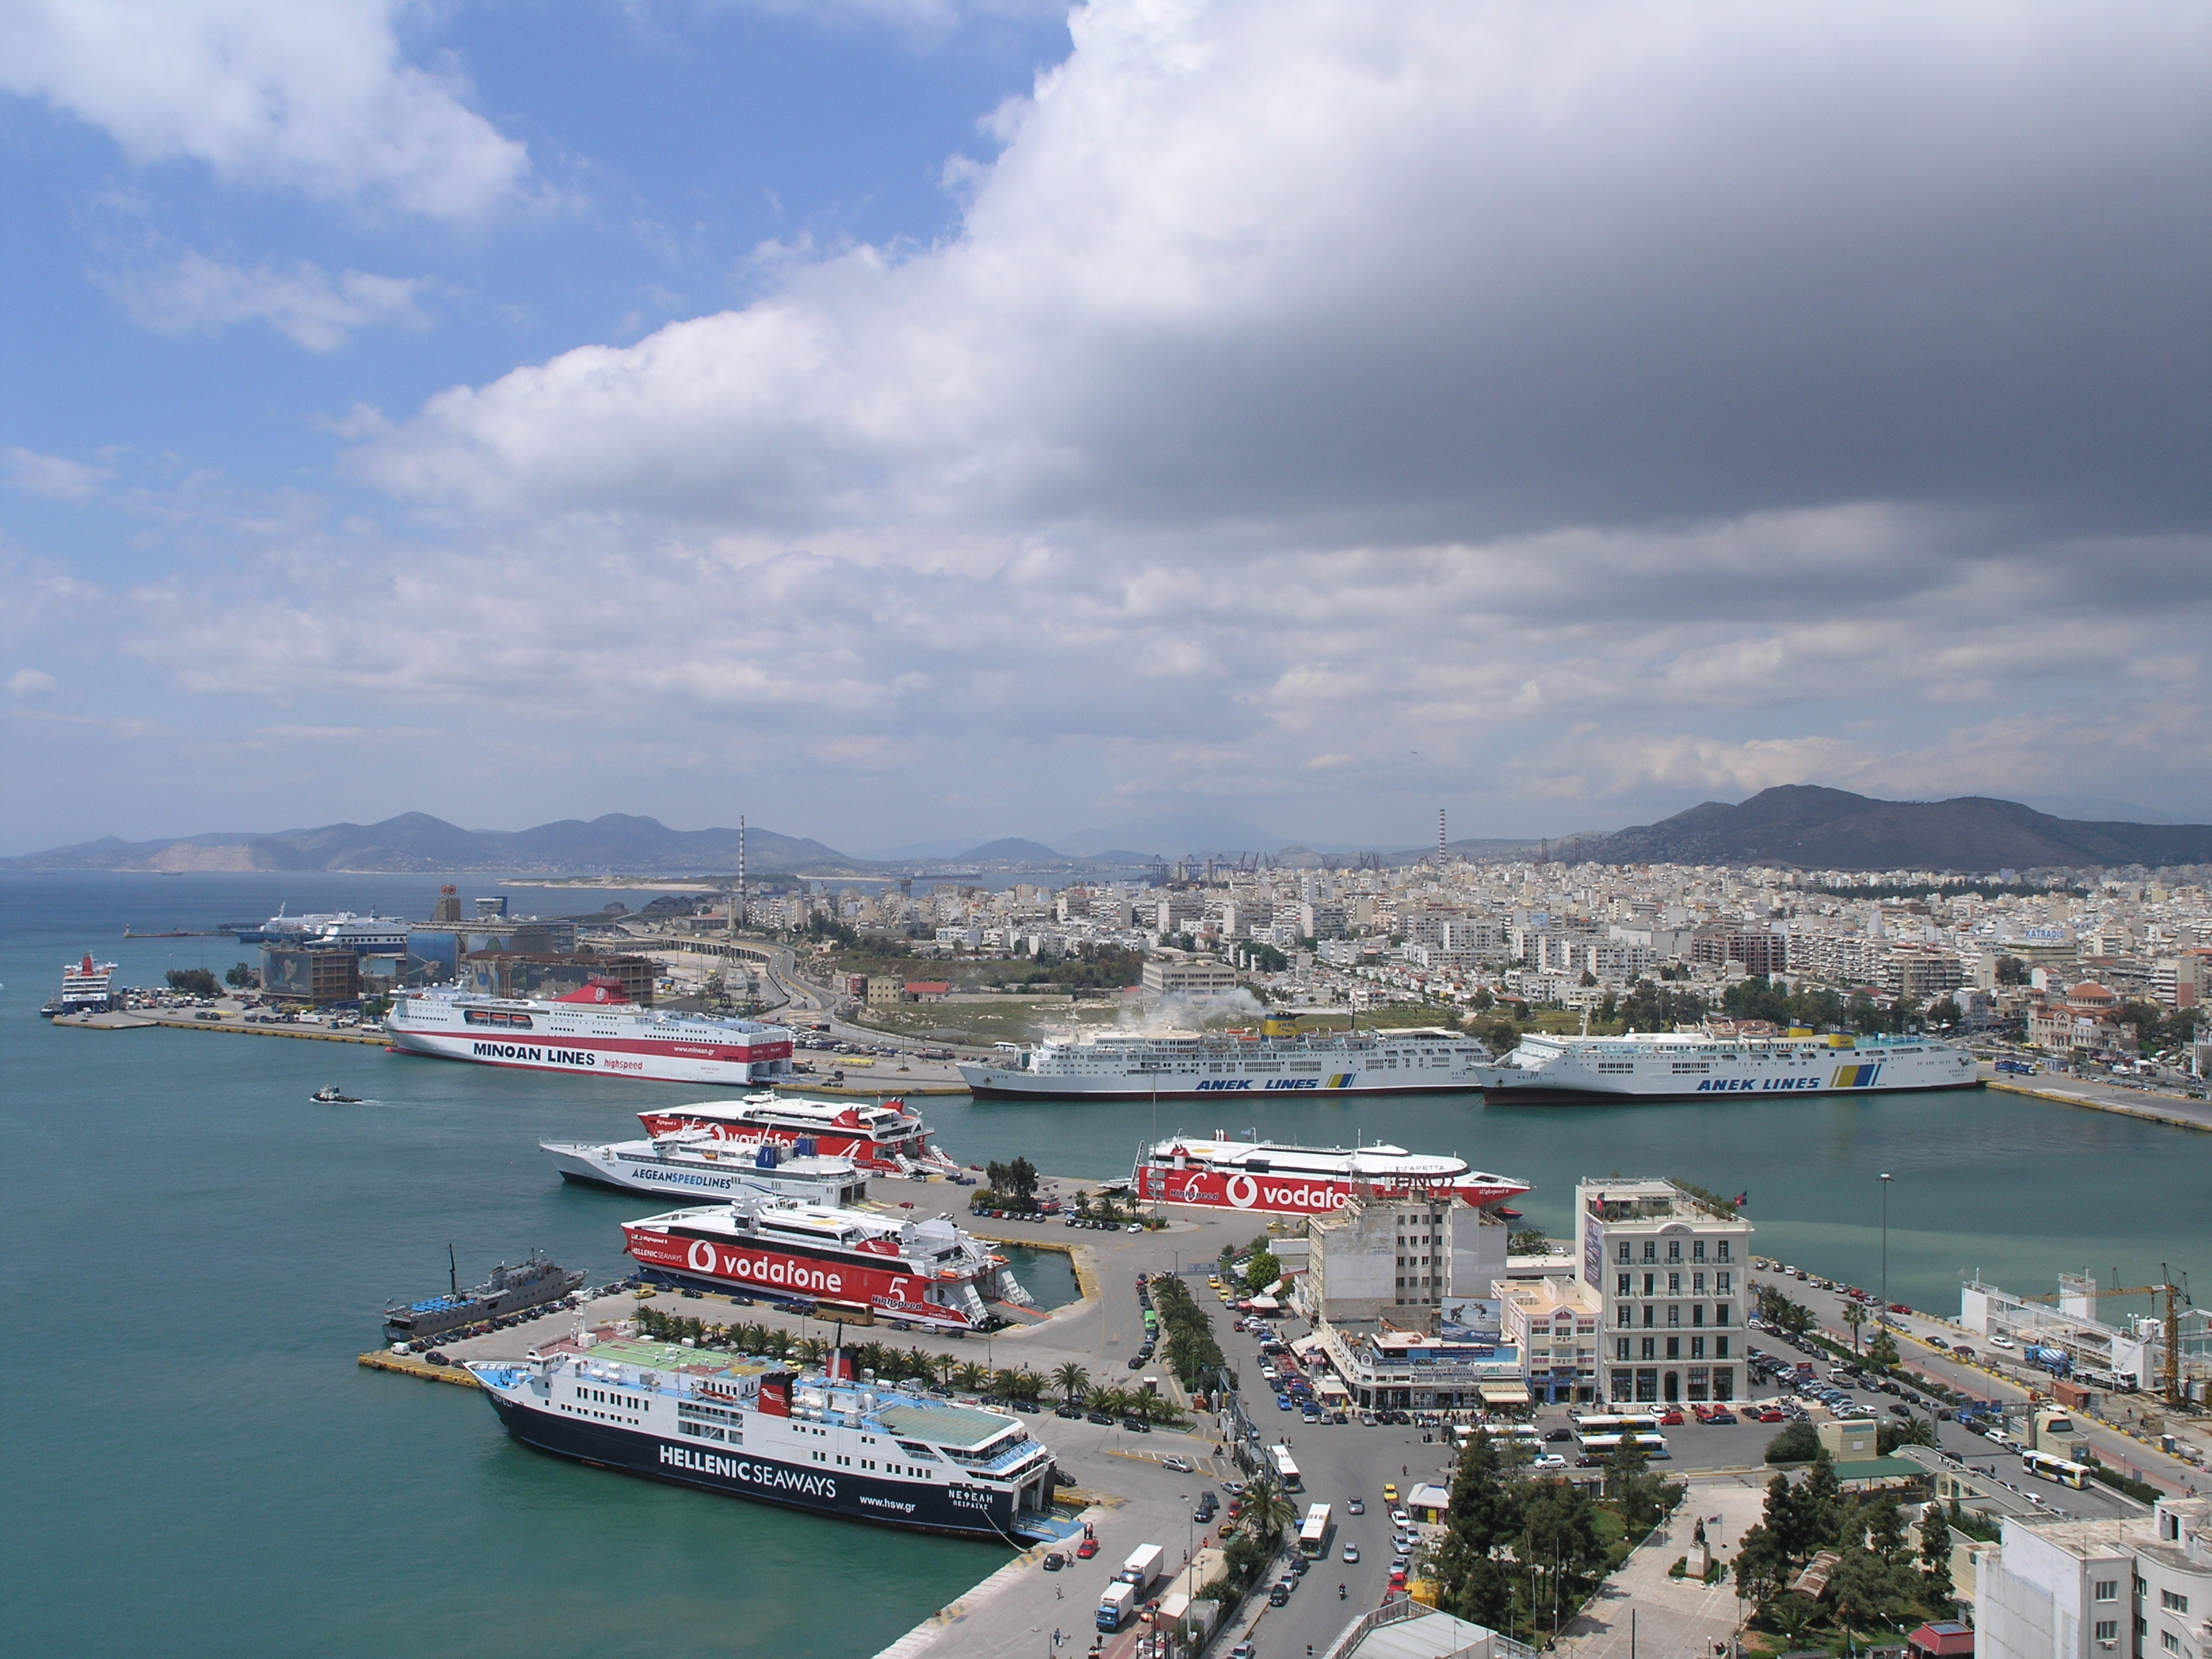 http://upload.wikimedia.org/wikipedia/commons/0/06/Port_of_Piraeus_Panoramic_View.JPG